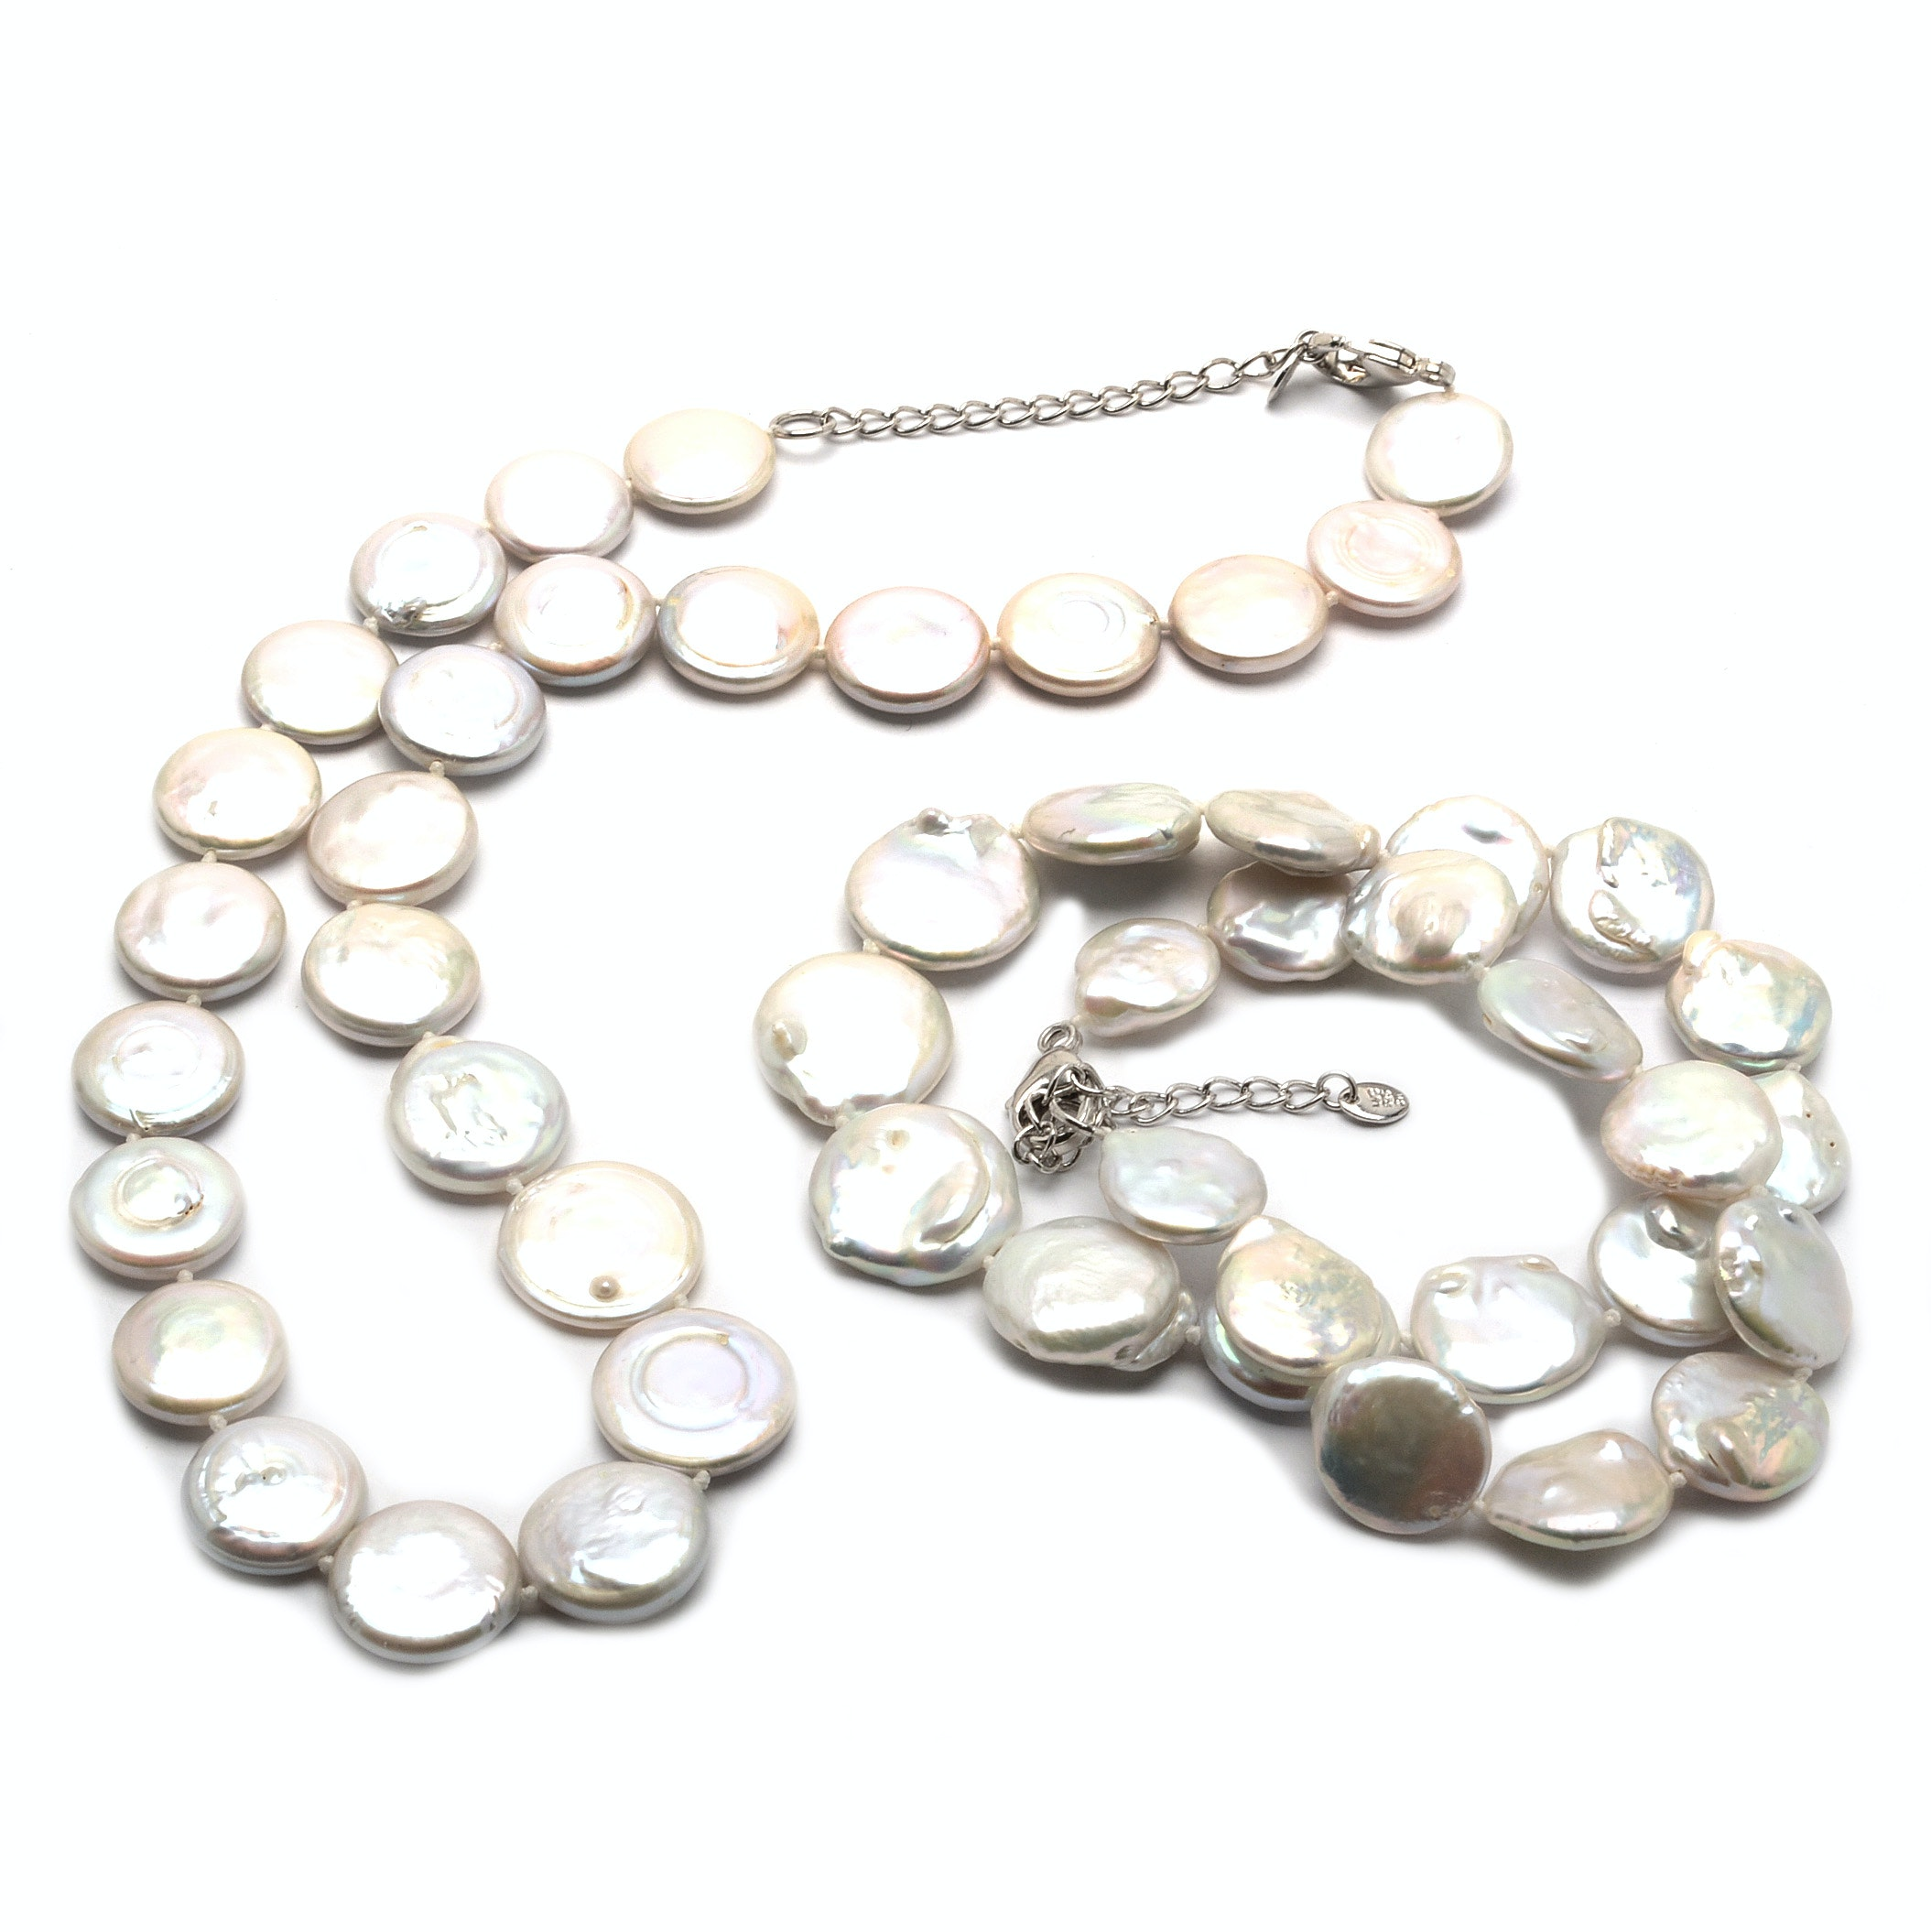 Lucas Lameth Sterling Cultured Coin Pearl Necklaces